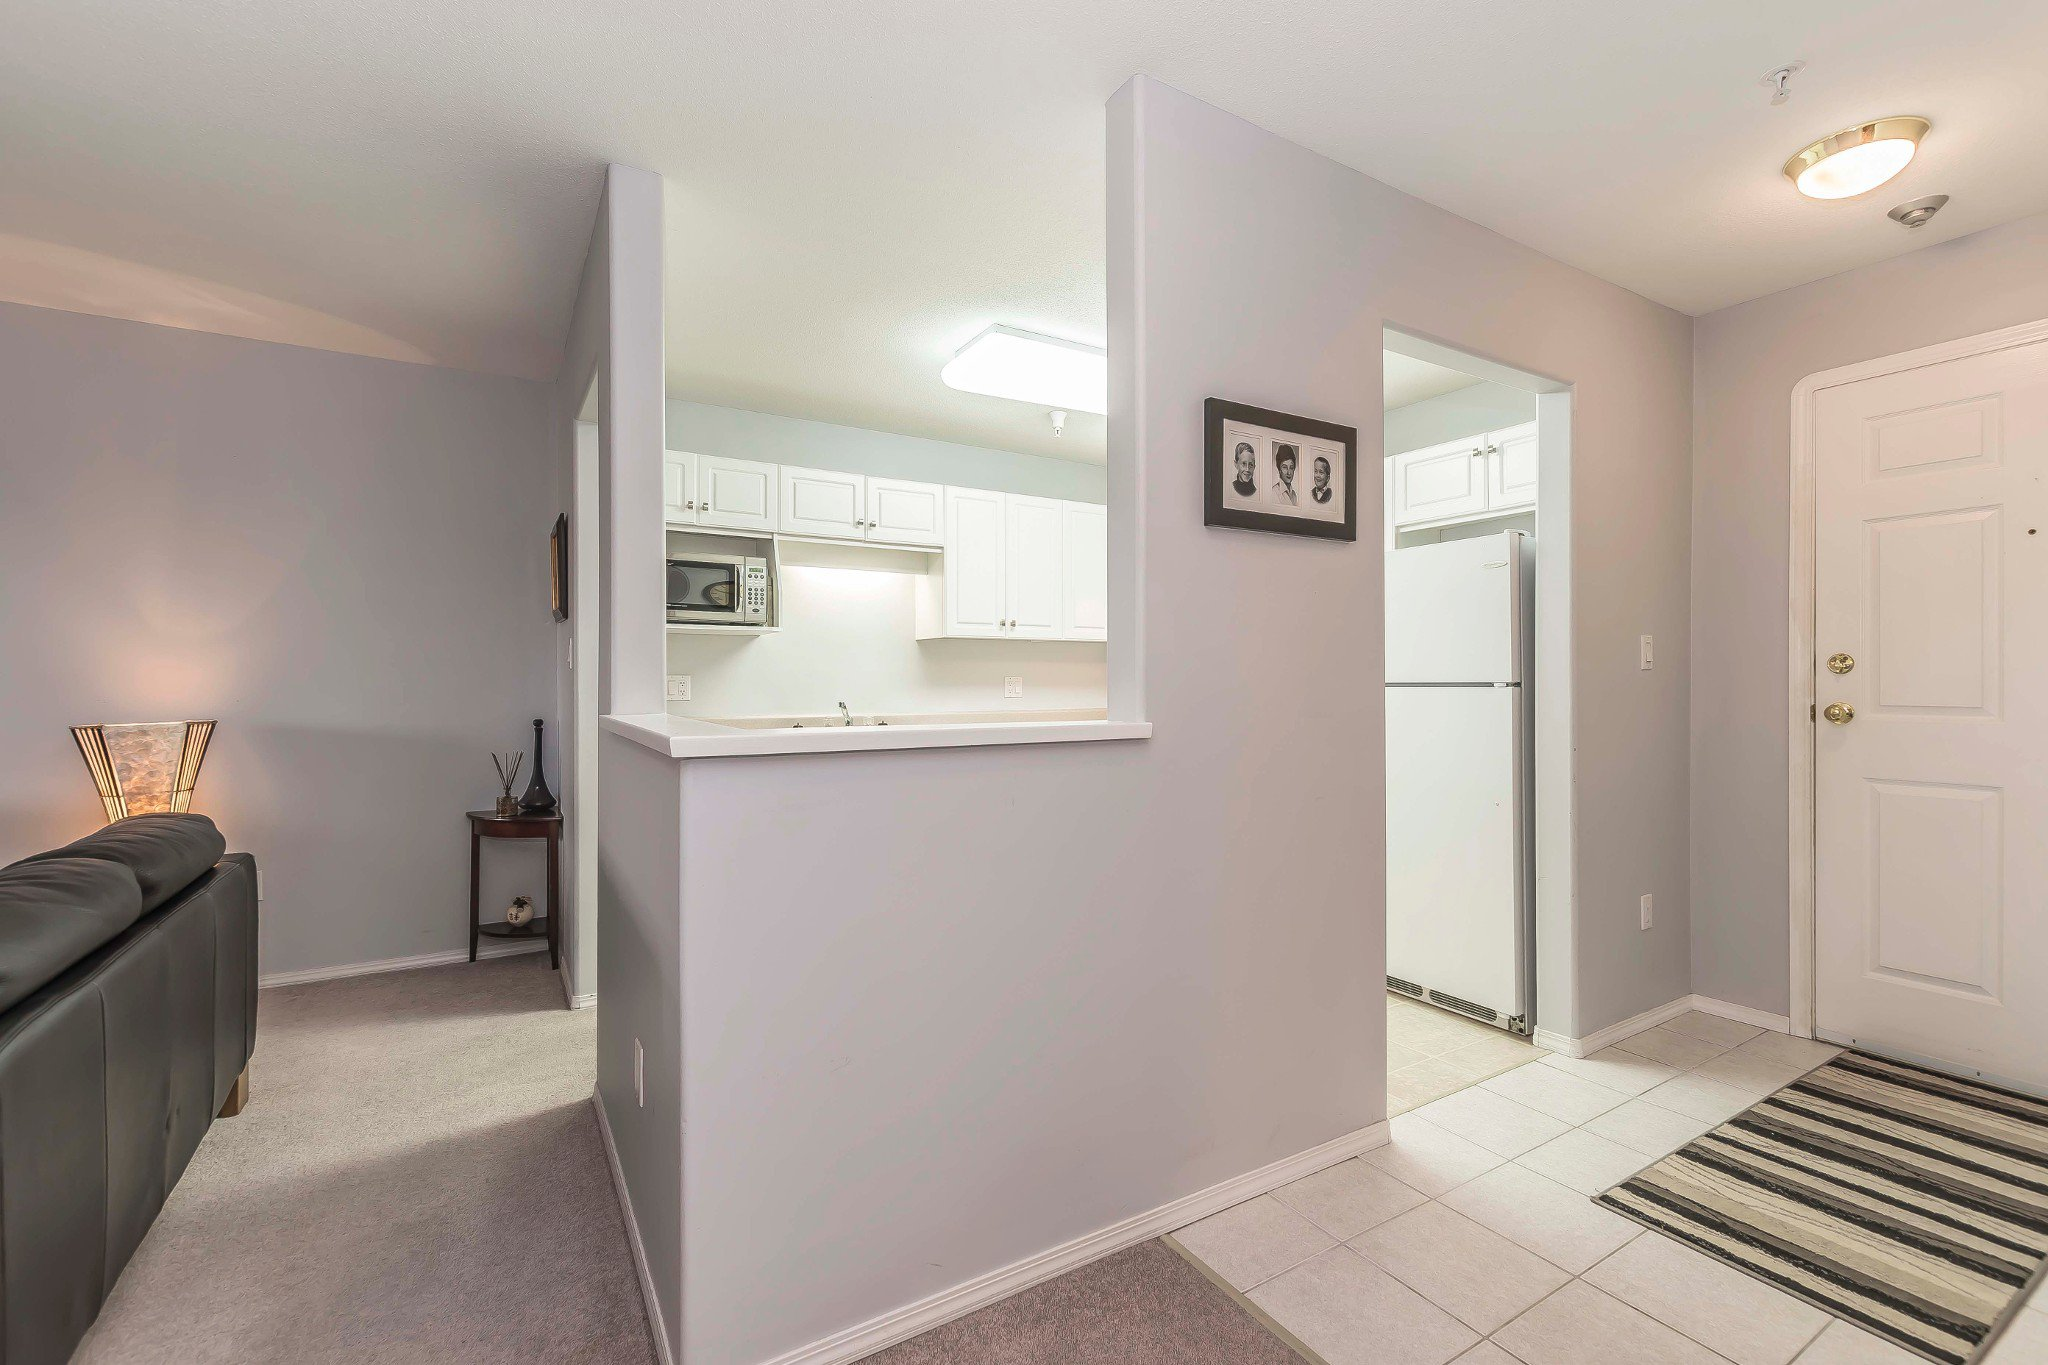 Photo 7: Photos: 210 46693 Yale Road in Chilliwack: Condo for sale : MLS®# r2231167